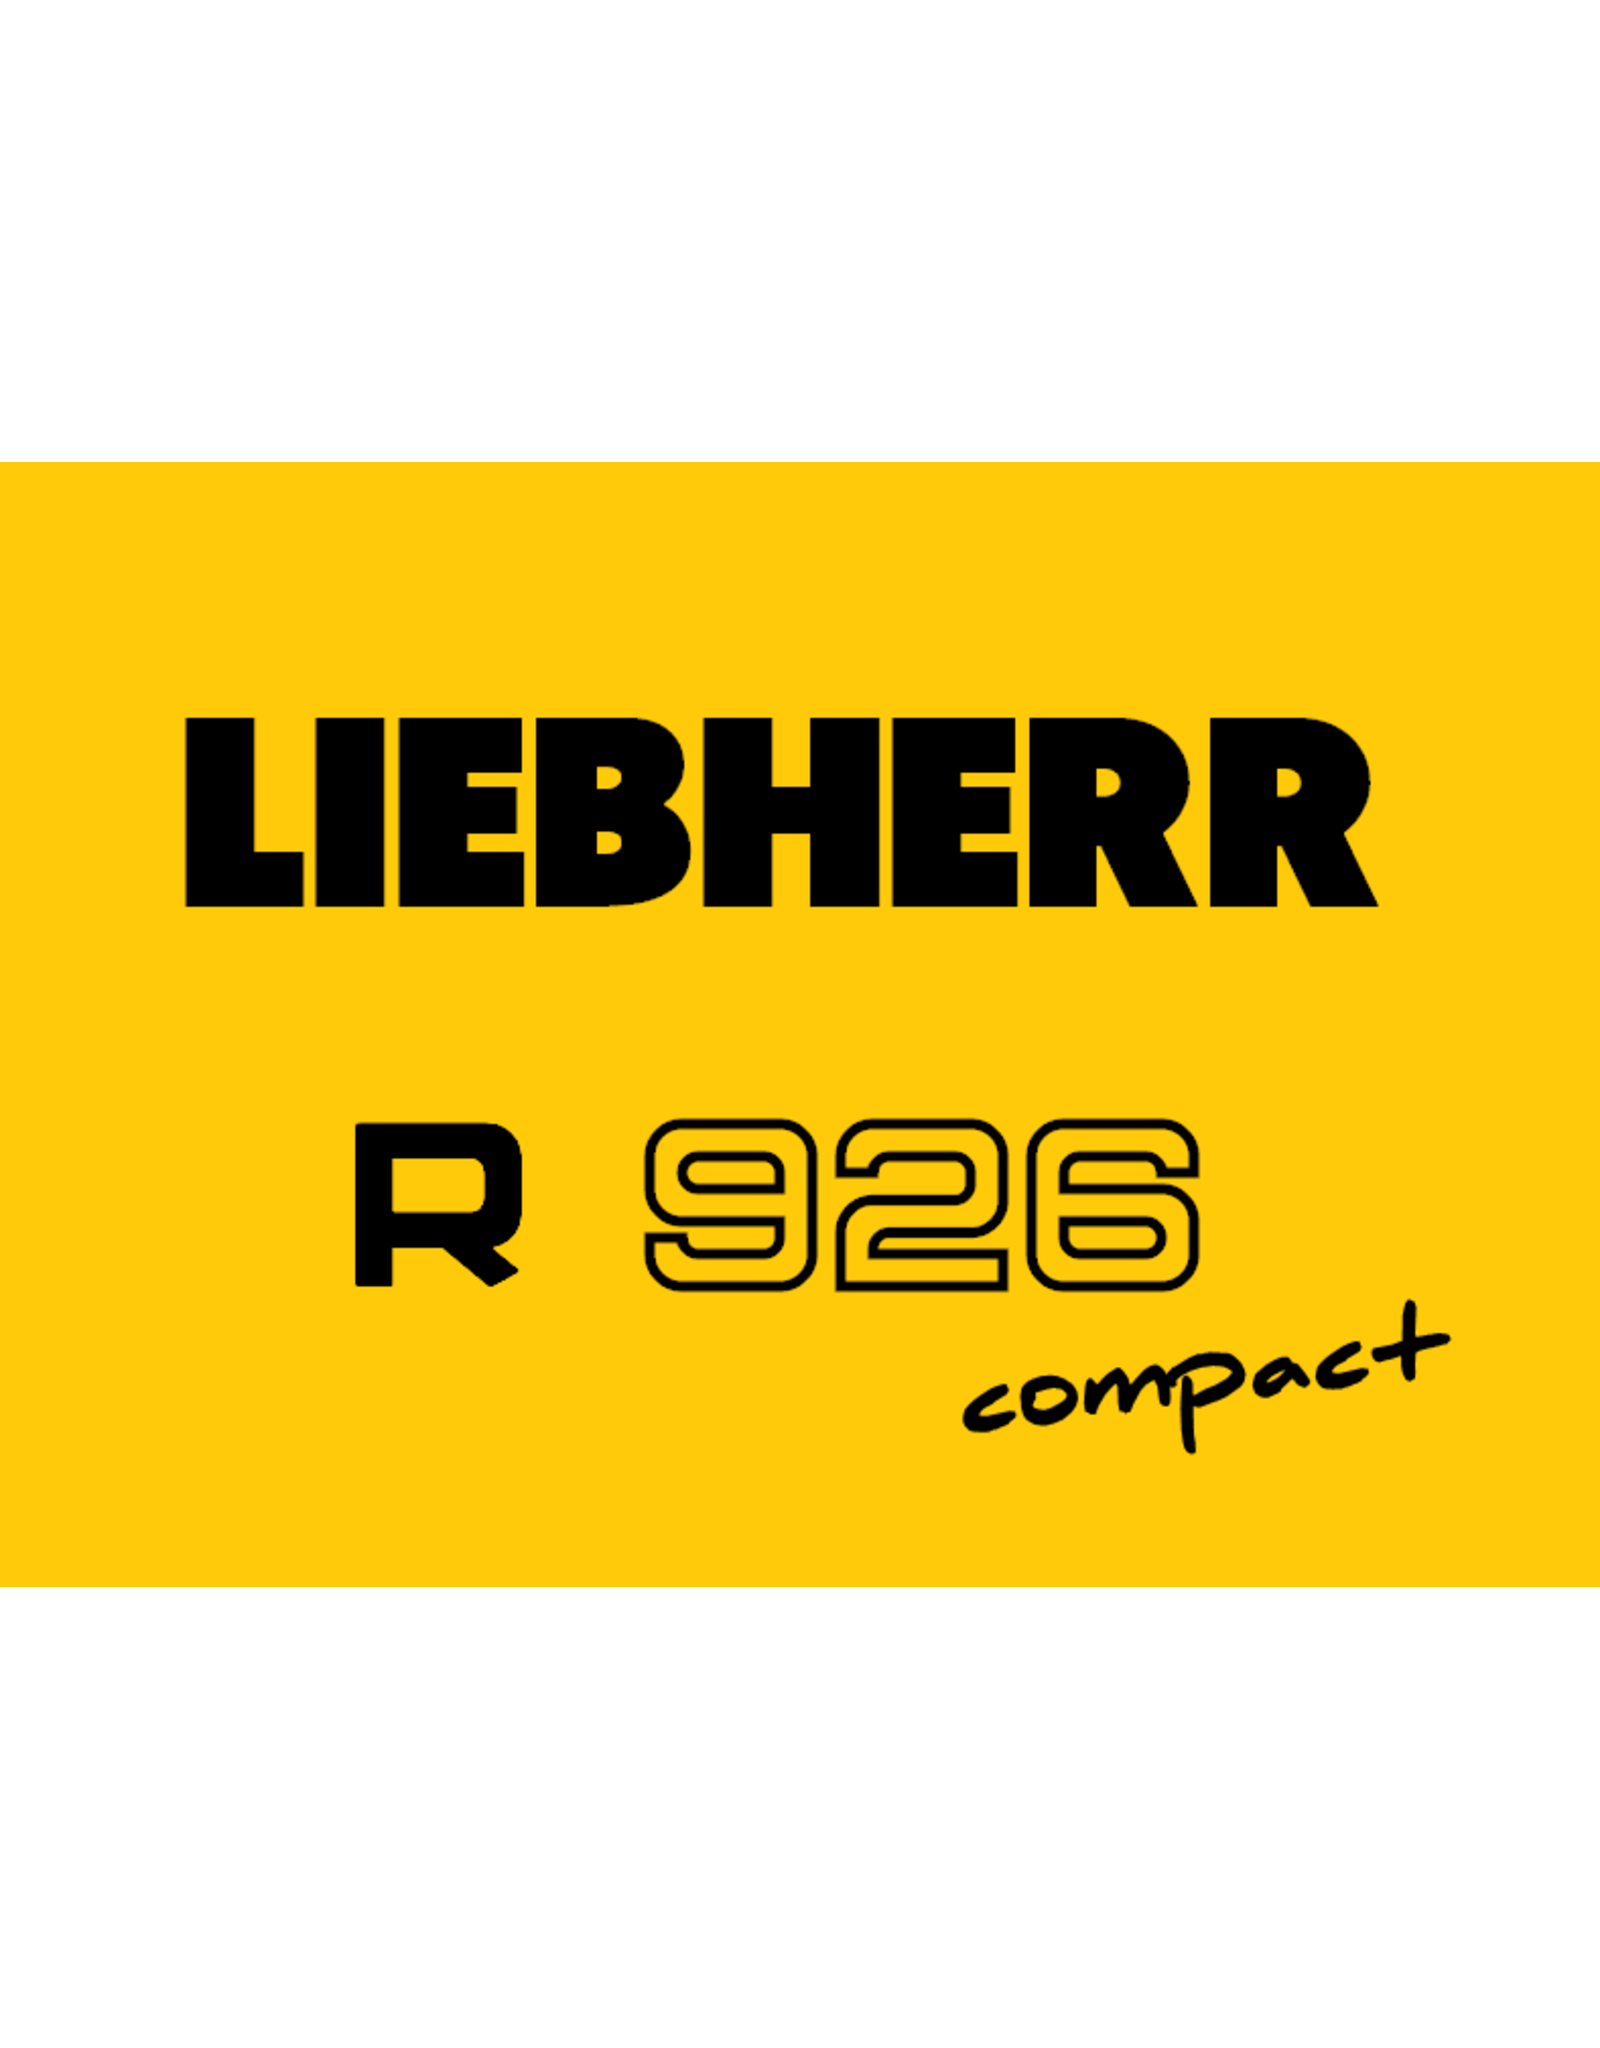 Echle Hartstahl GmbH FOPS for Liebherr R 926 Compact